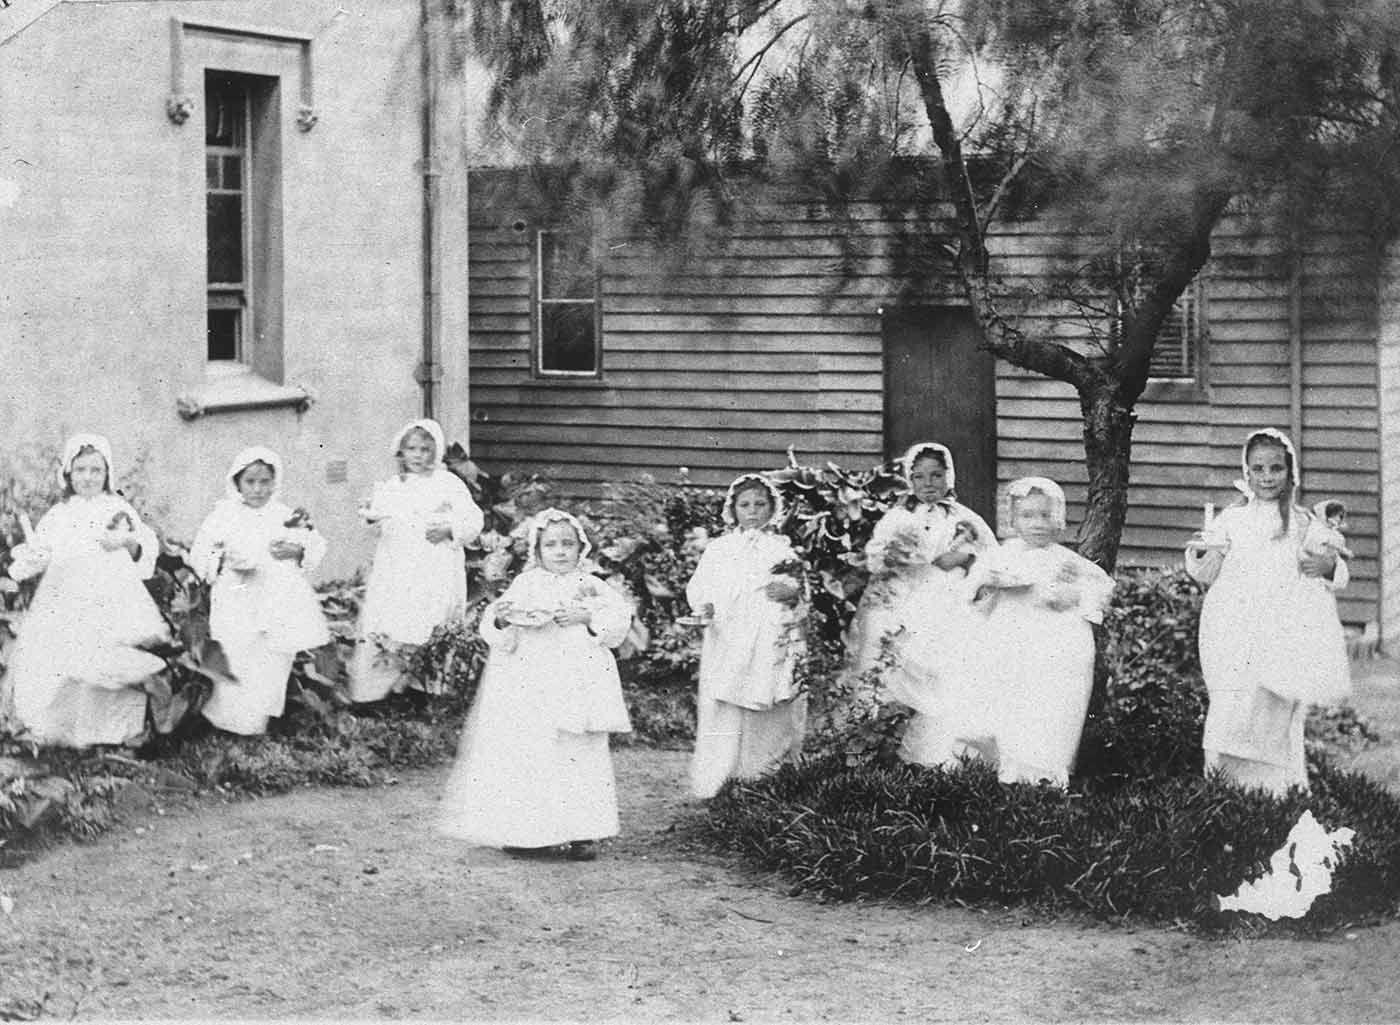 Black and white photo of a group of young girls. The girls are standing in a garden with some under a tree. Two buildings can be seen in the background.  Each of the girls is wearing a long dress and bonnet and is holding a doll in their left arm and a candle in their right hand. - click to view larger image